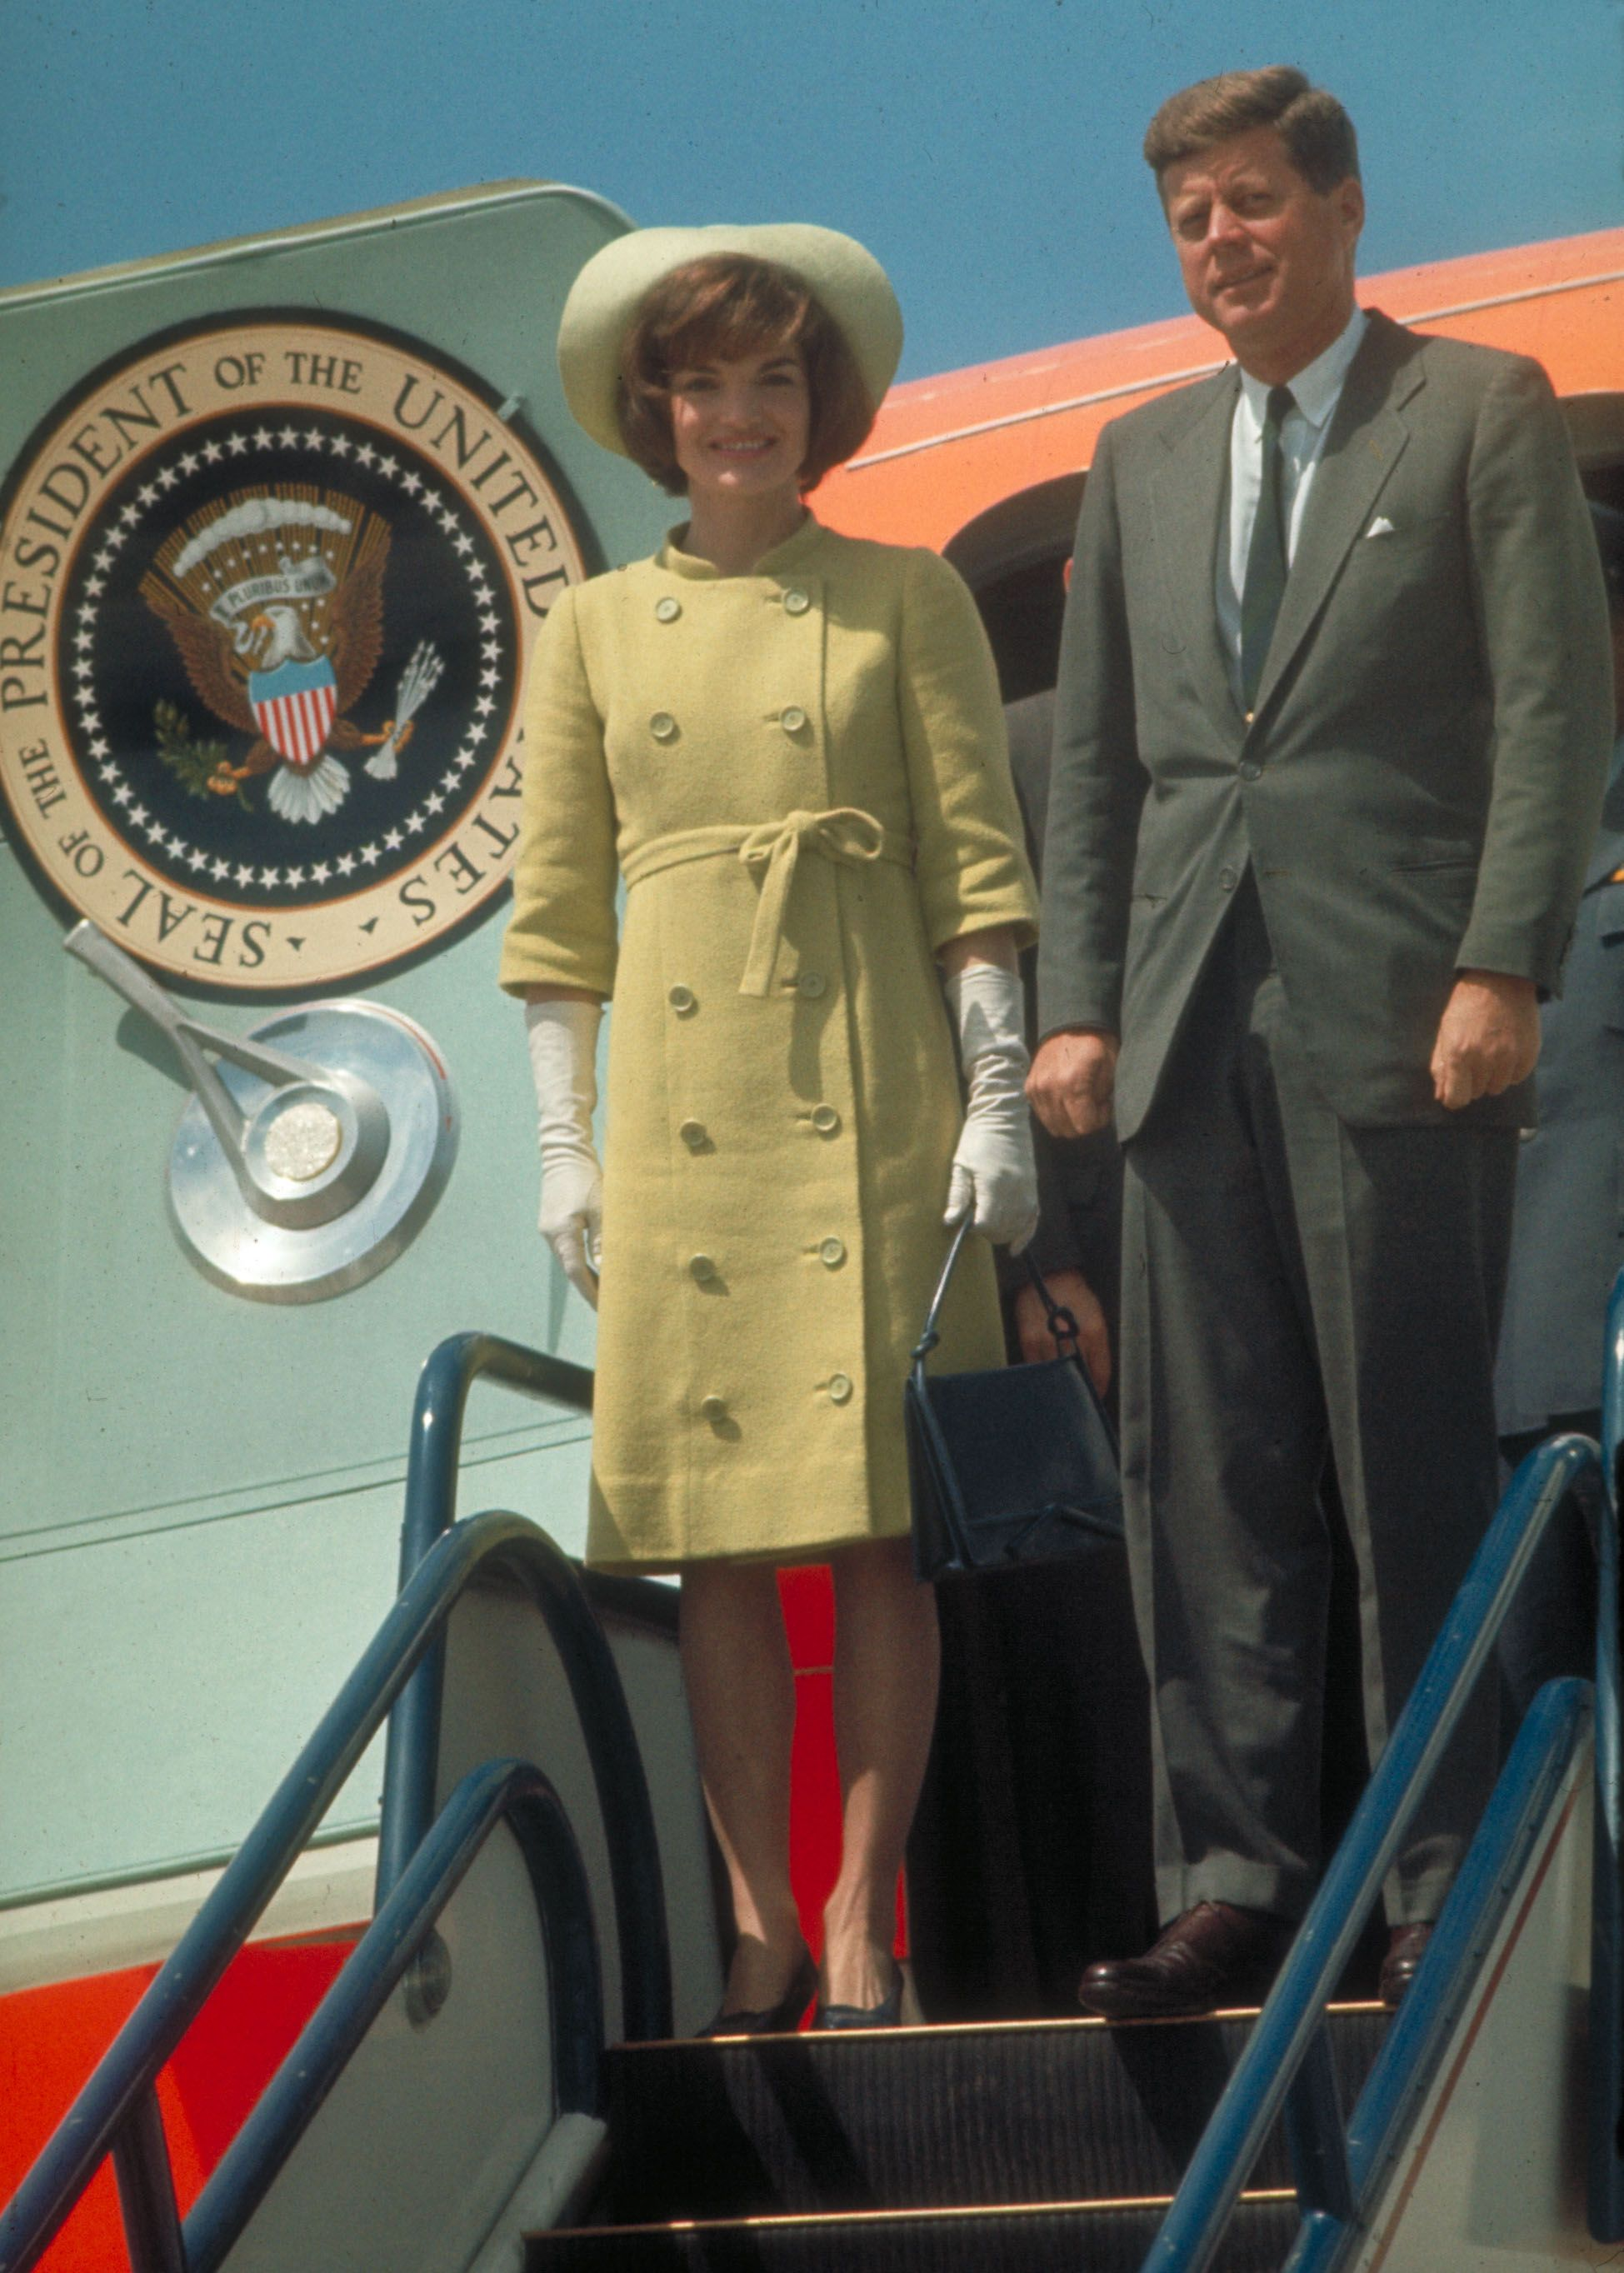 Jackie and JFK on Air Force One as they arrive in Latin America.